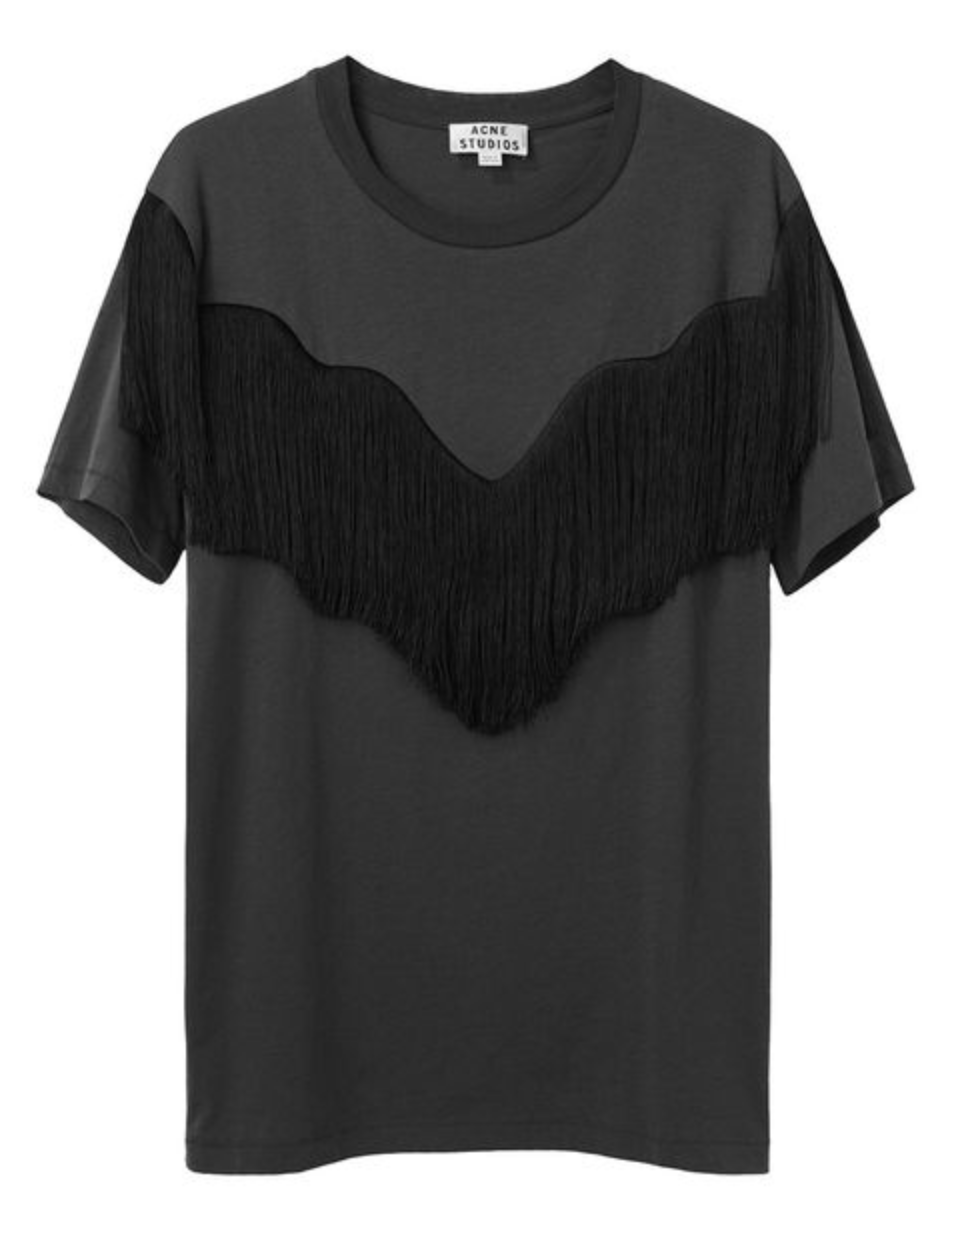 Acne Studios Joshi Fringe tee